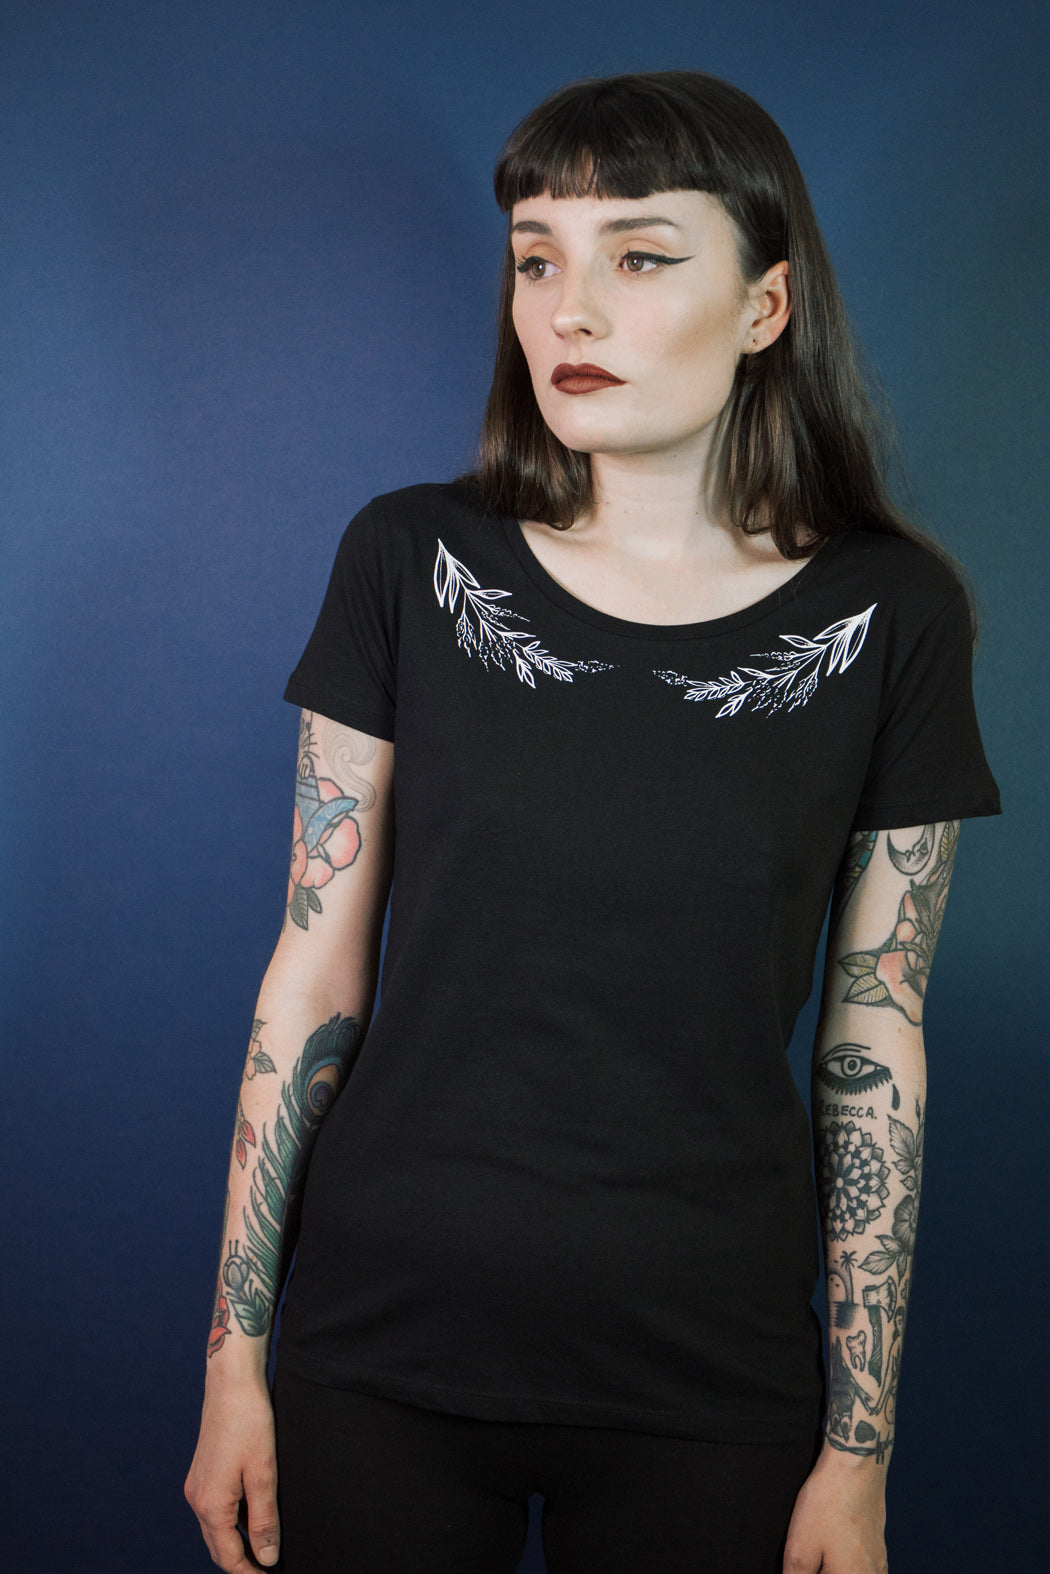 Mary wyatt london scoop neck tshirt with floral collar illustrated by rebecca vincent tattoo